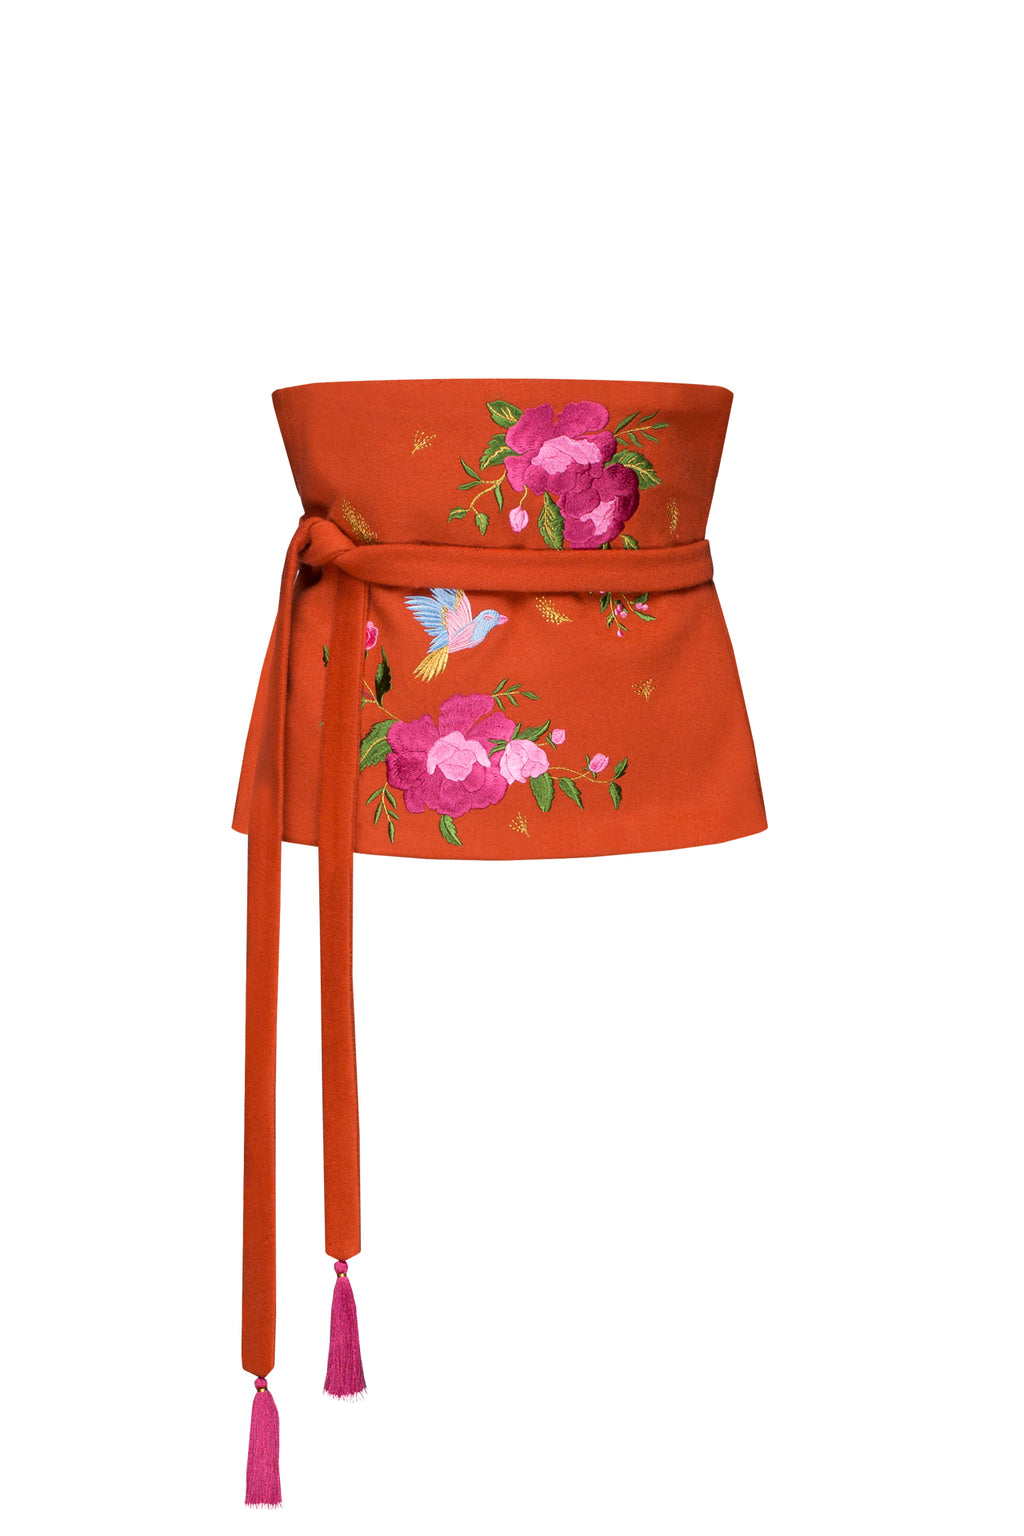 TEA ROSES orange embroidered belt